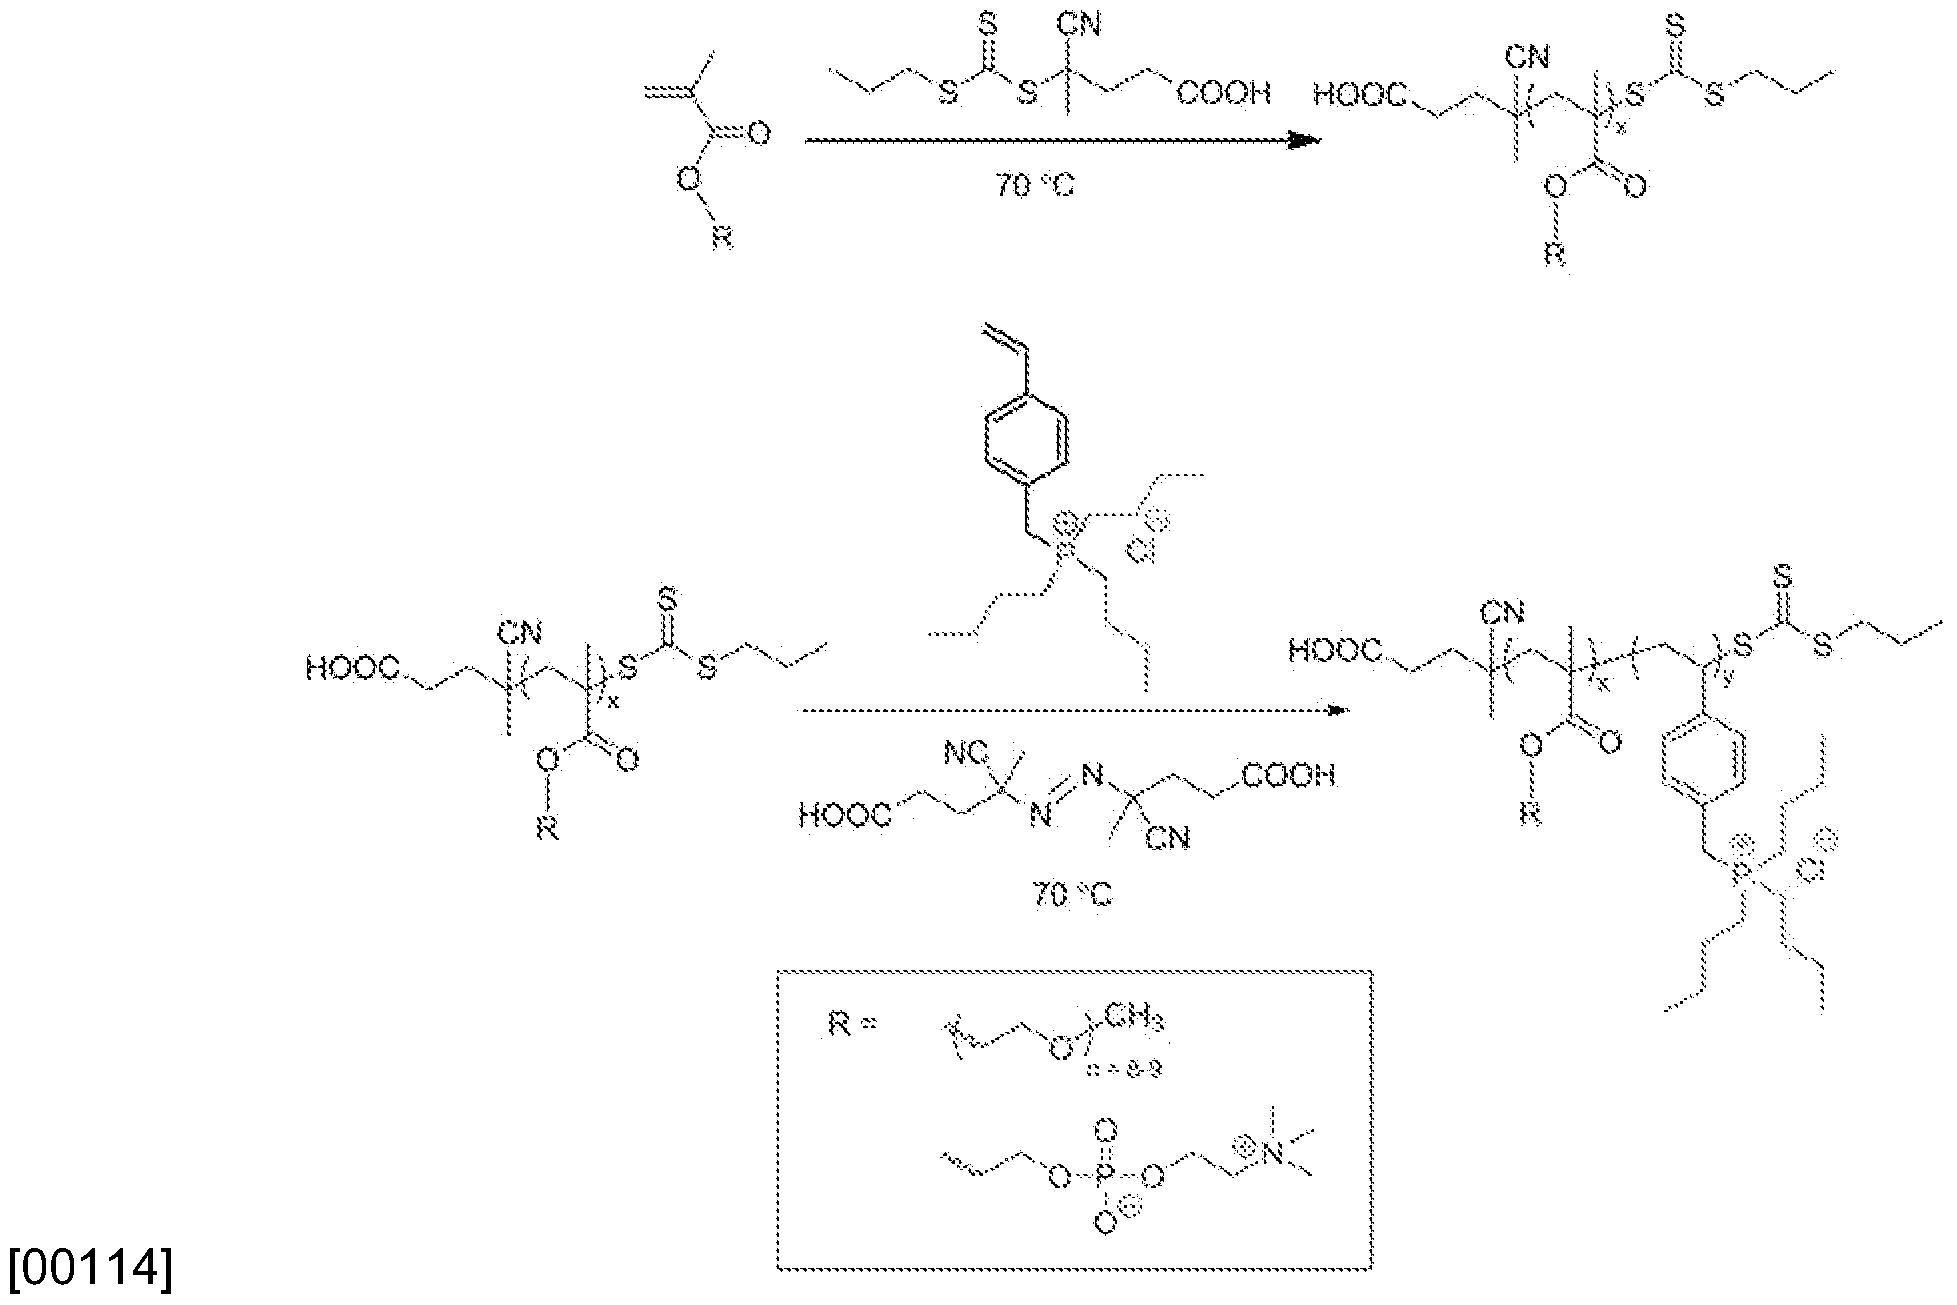 Wo2012174543a2 Phosphonium Containing Polyelectrolytes For 2000 Mg Zs Under Dash Fuse Box Diagram Figure Imgf000037 0001